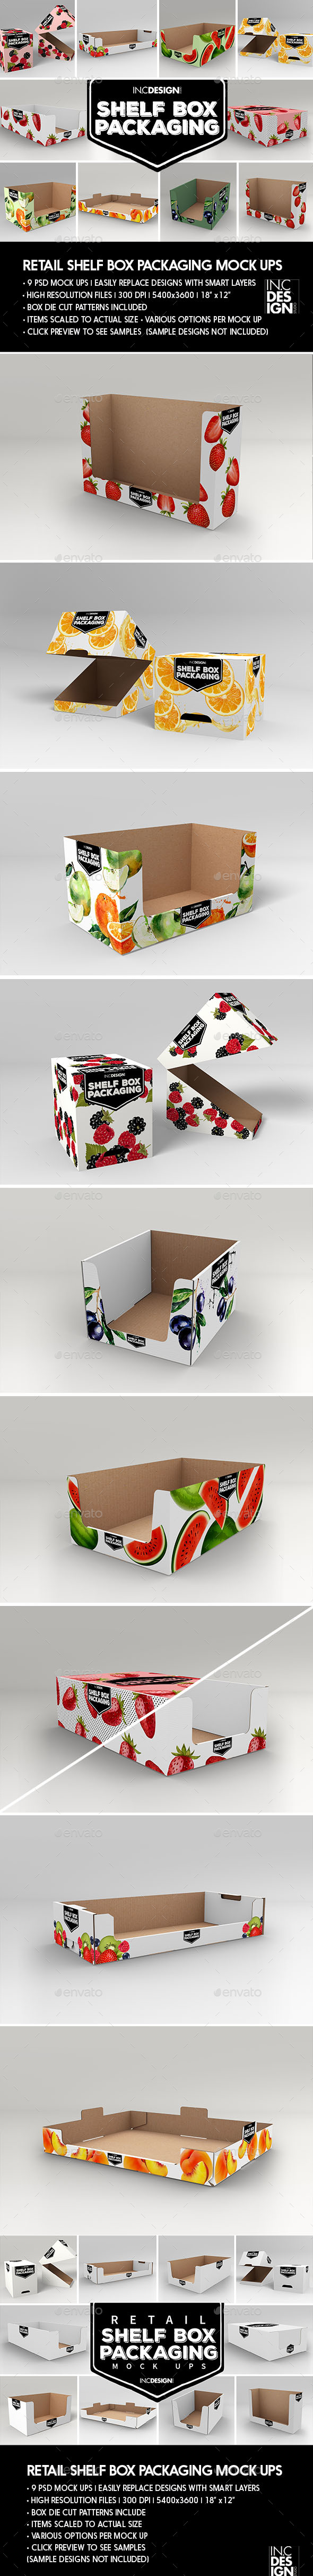 Retail Shelf Box Packaging MockUps - Food and Drink Packaging